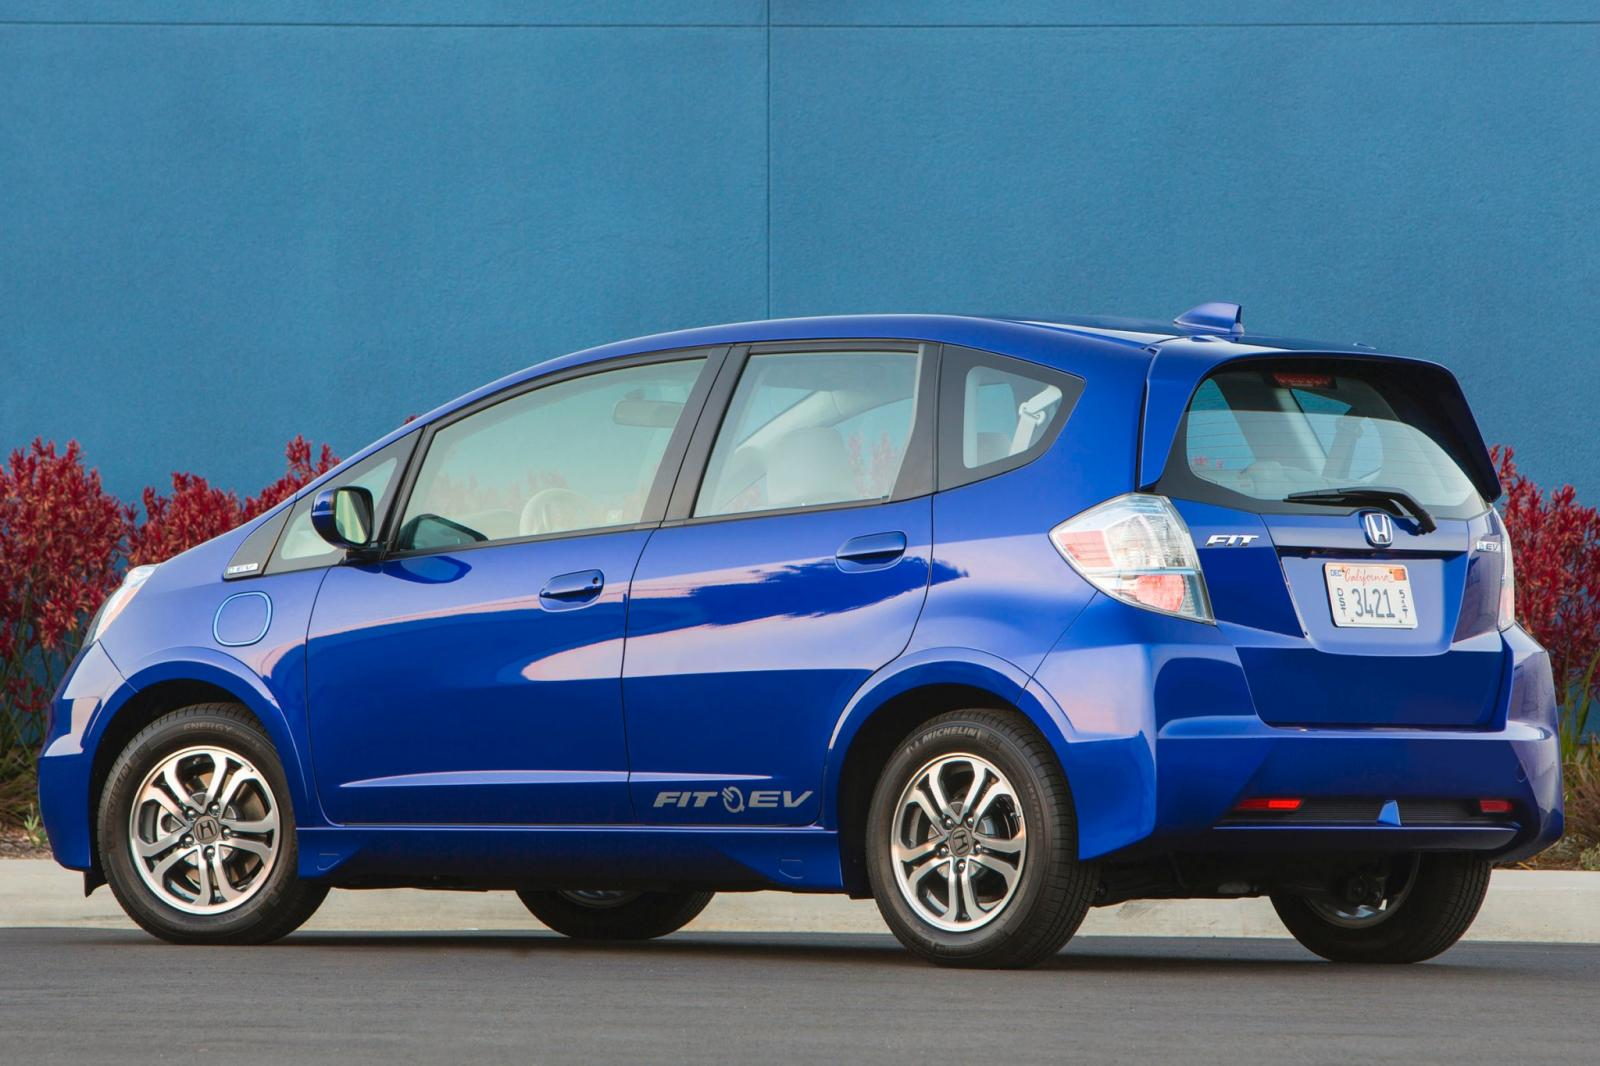 2013 honda fit ev information and photos zombiedrive for Honda fit ev